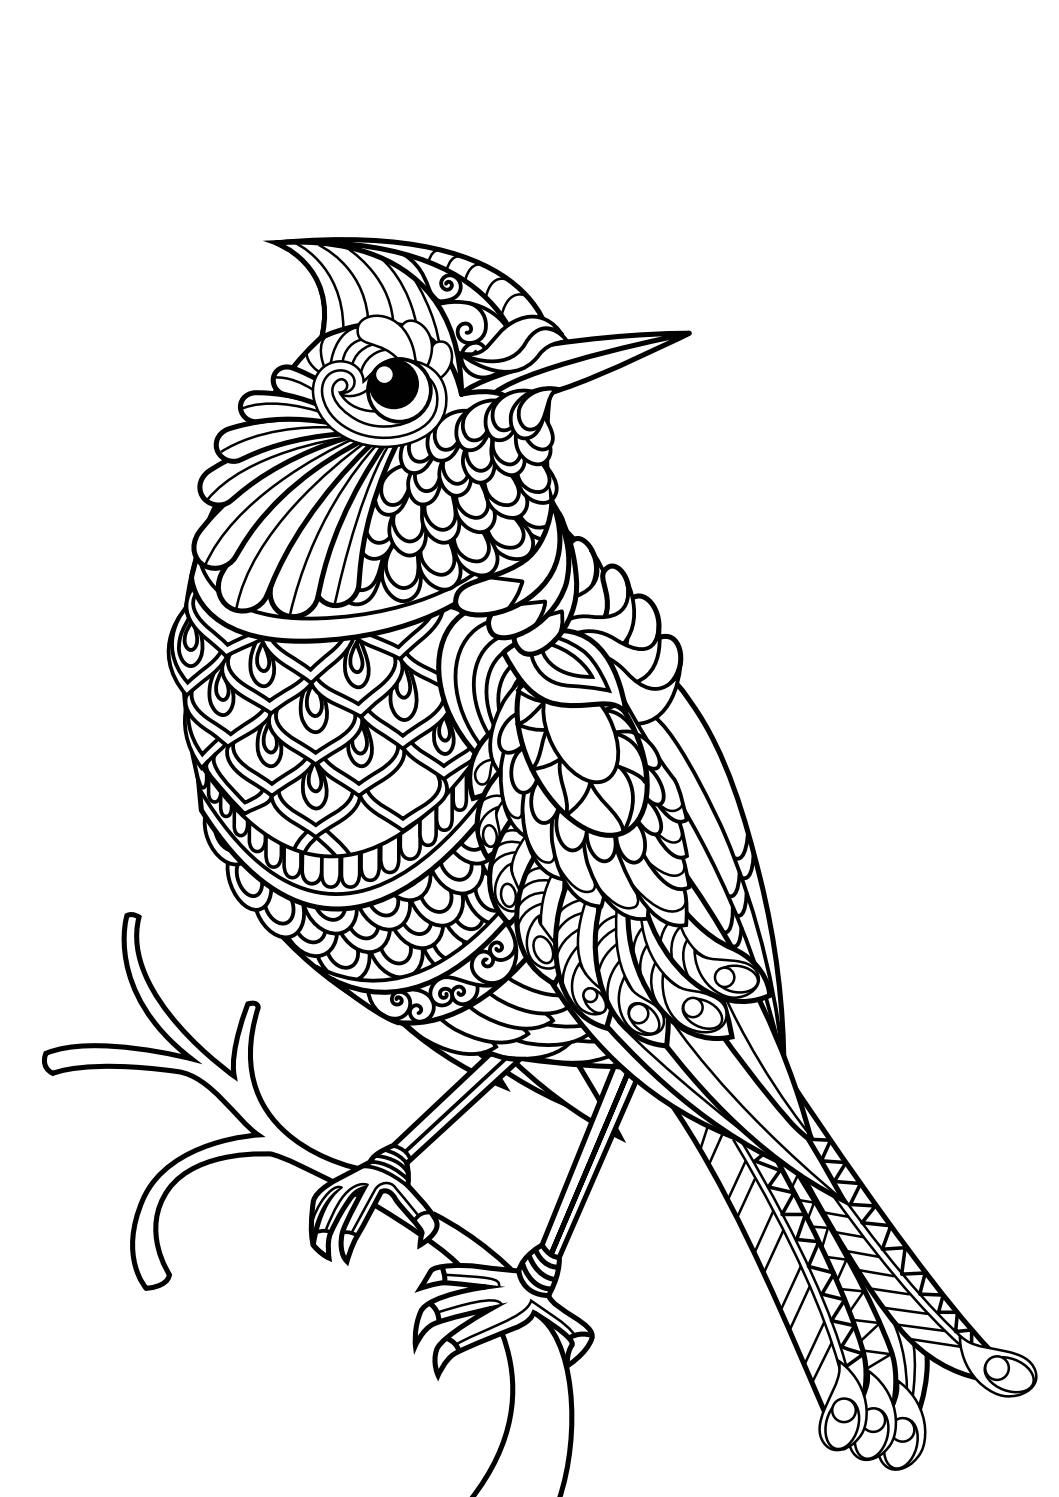 animal coloring pages pdf coloring birds and feathers bird coloring pages animal coloring. Black Bedroom Furniture Sets. Home Design Ideas